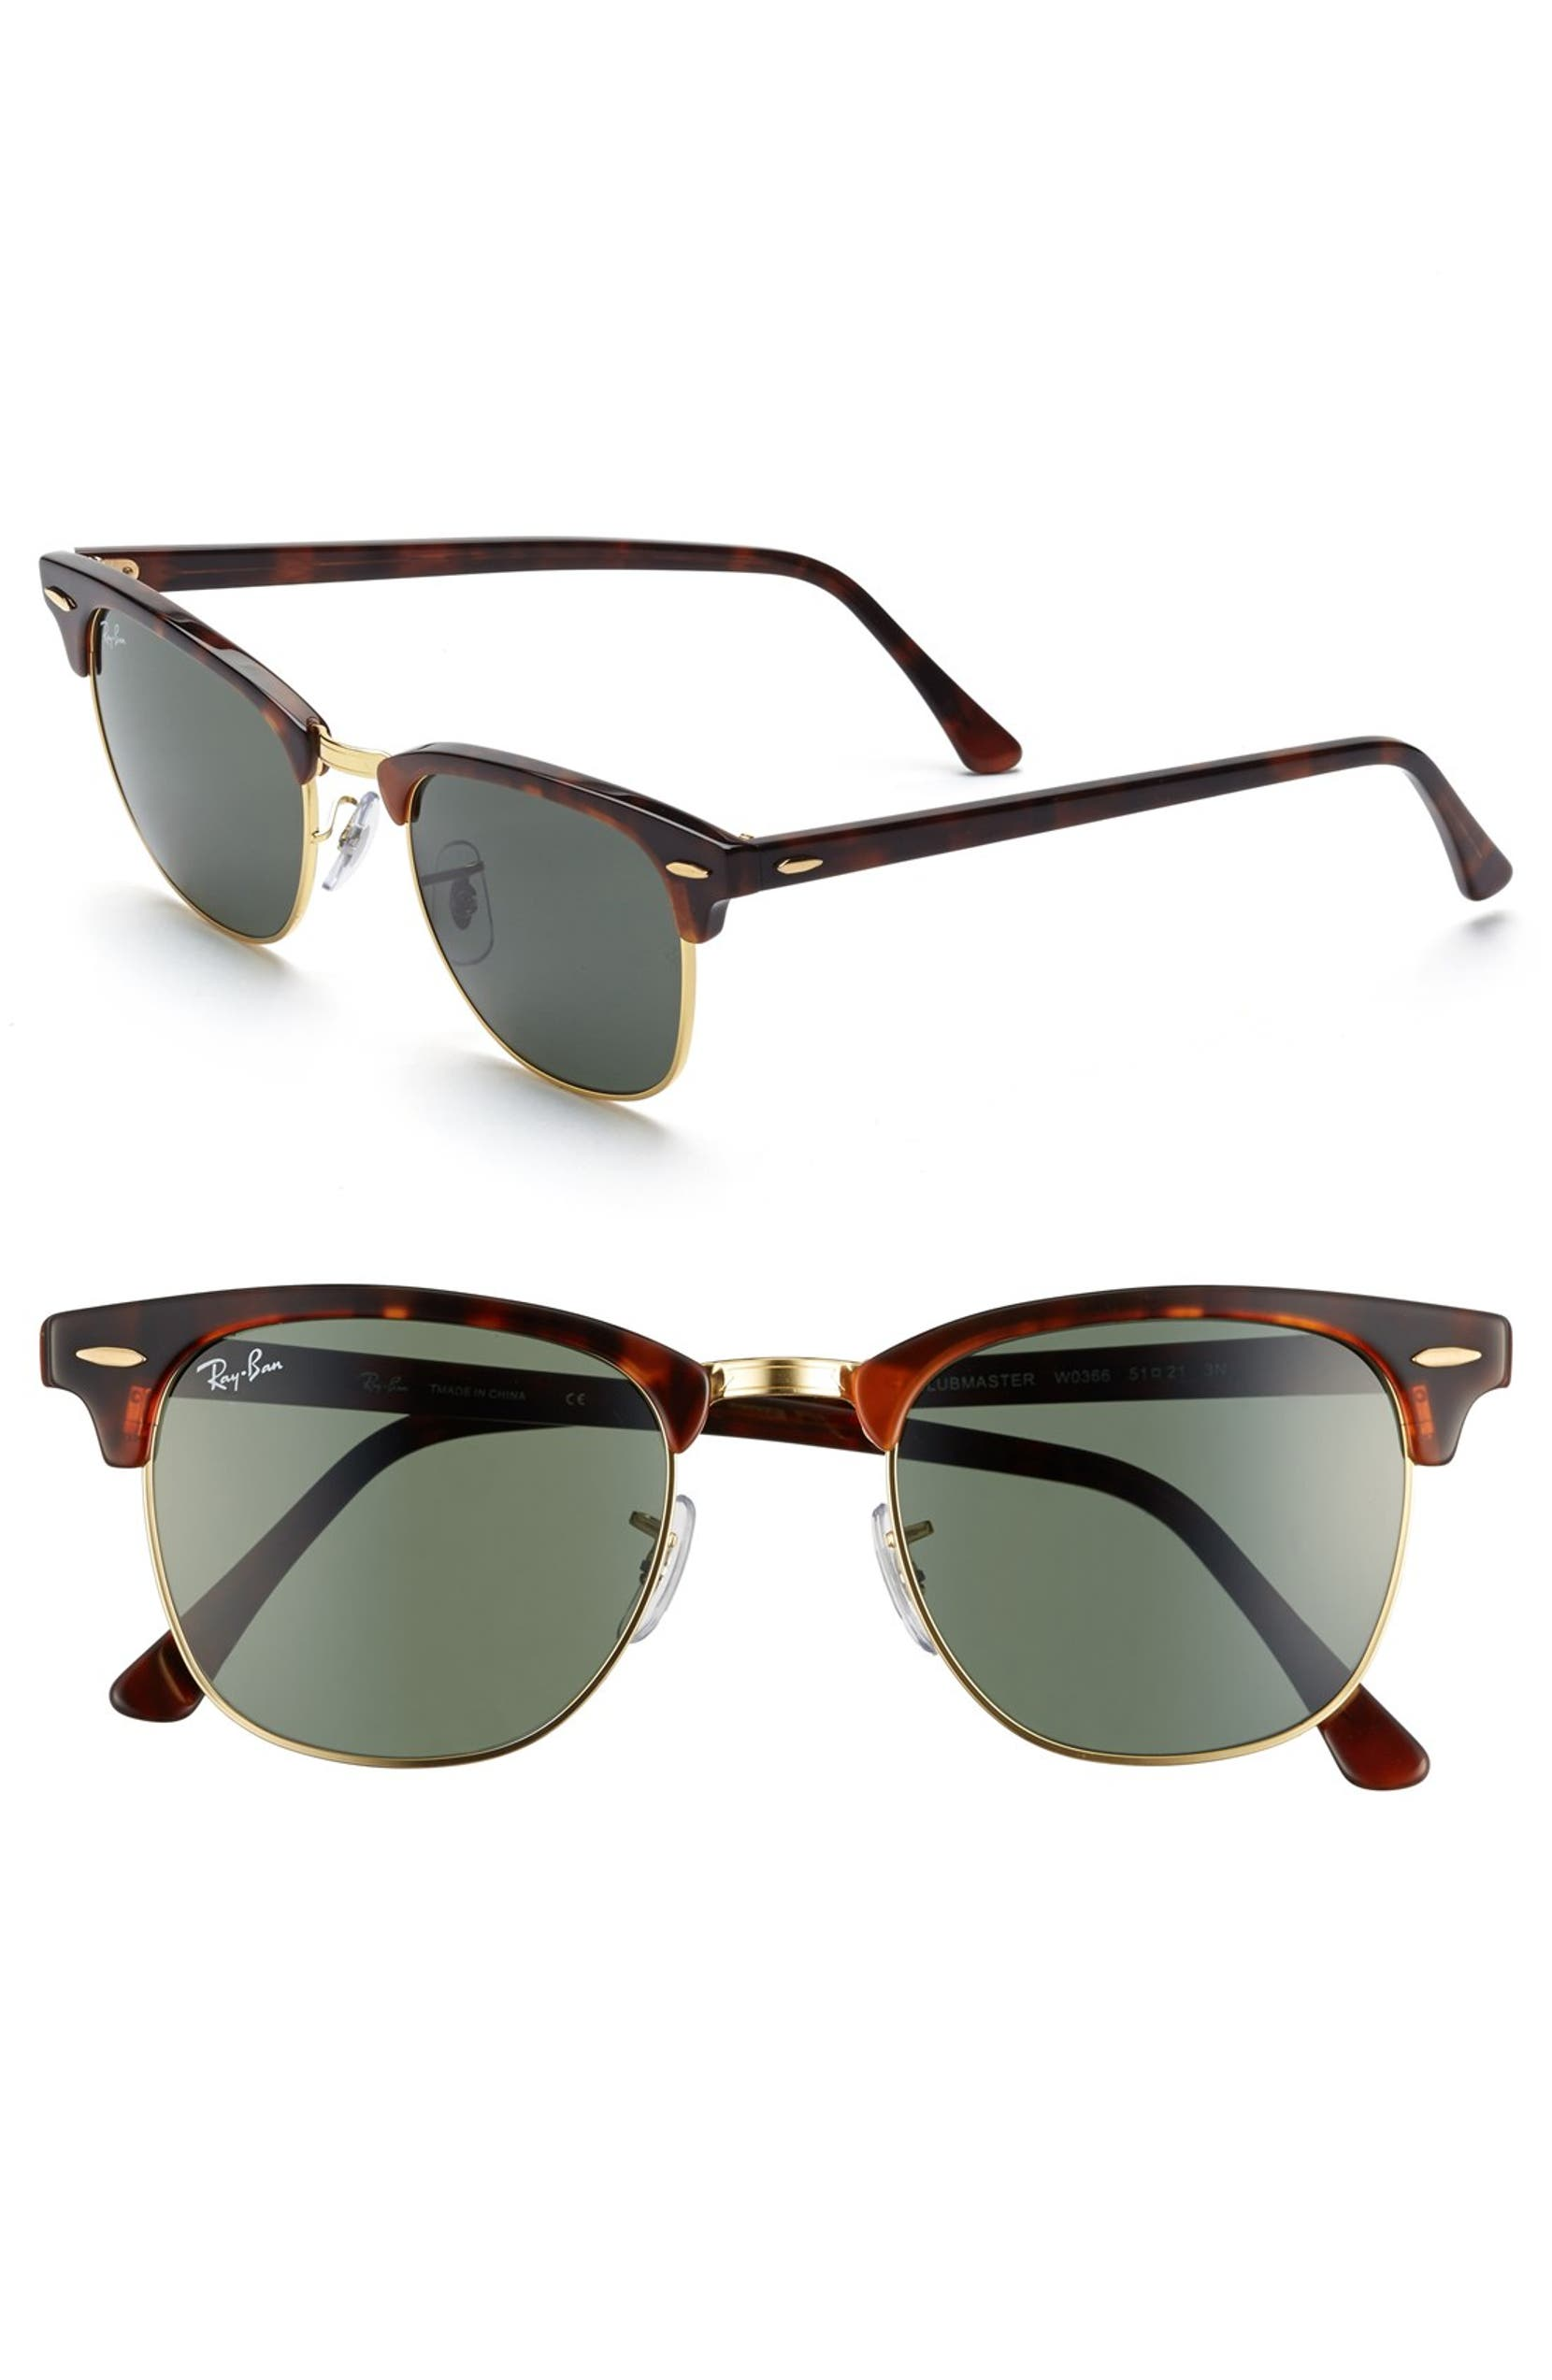 f61566b7a7 Ray-Ban Classic Clubmaster 51mm Sunglasses